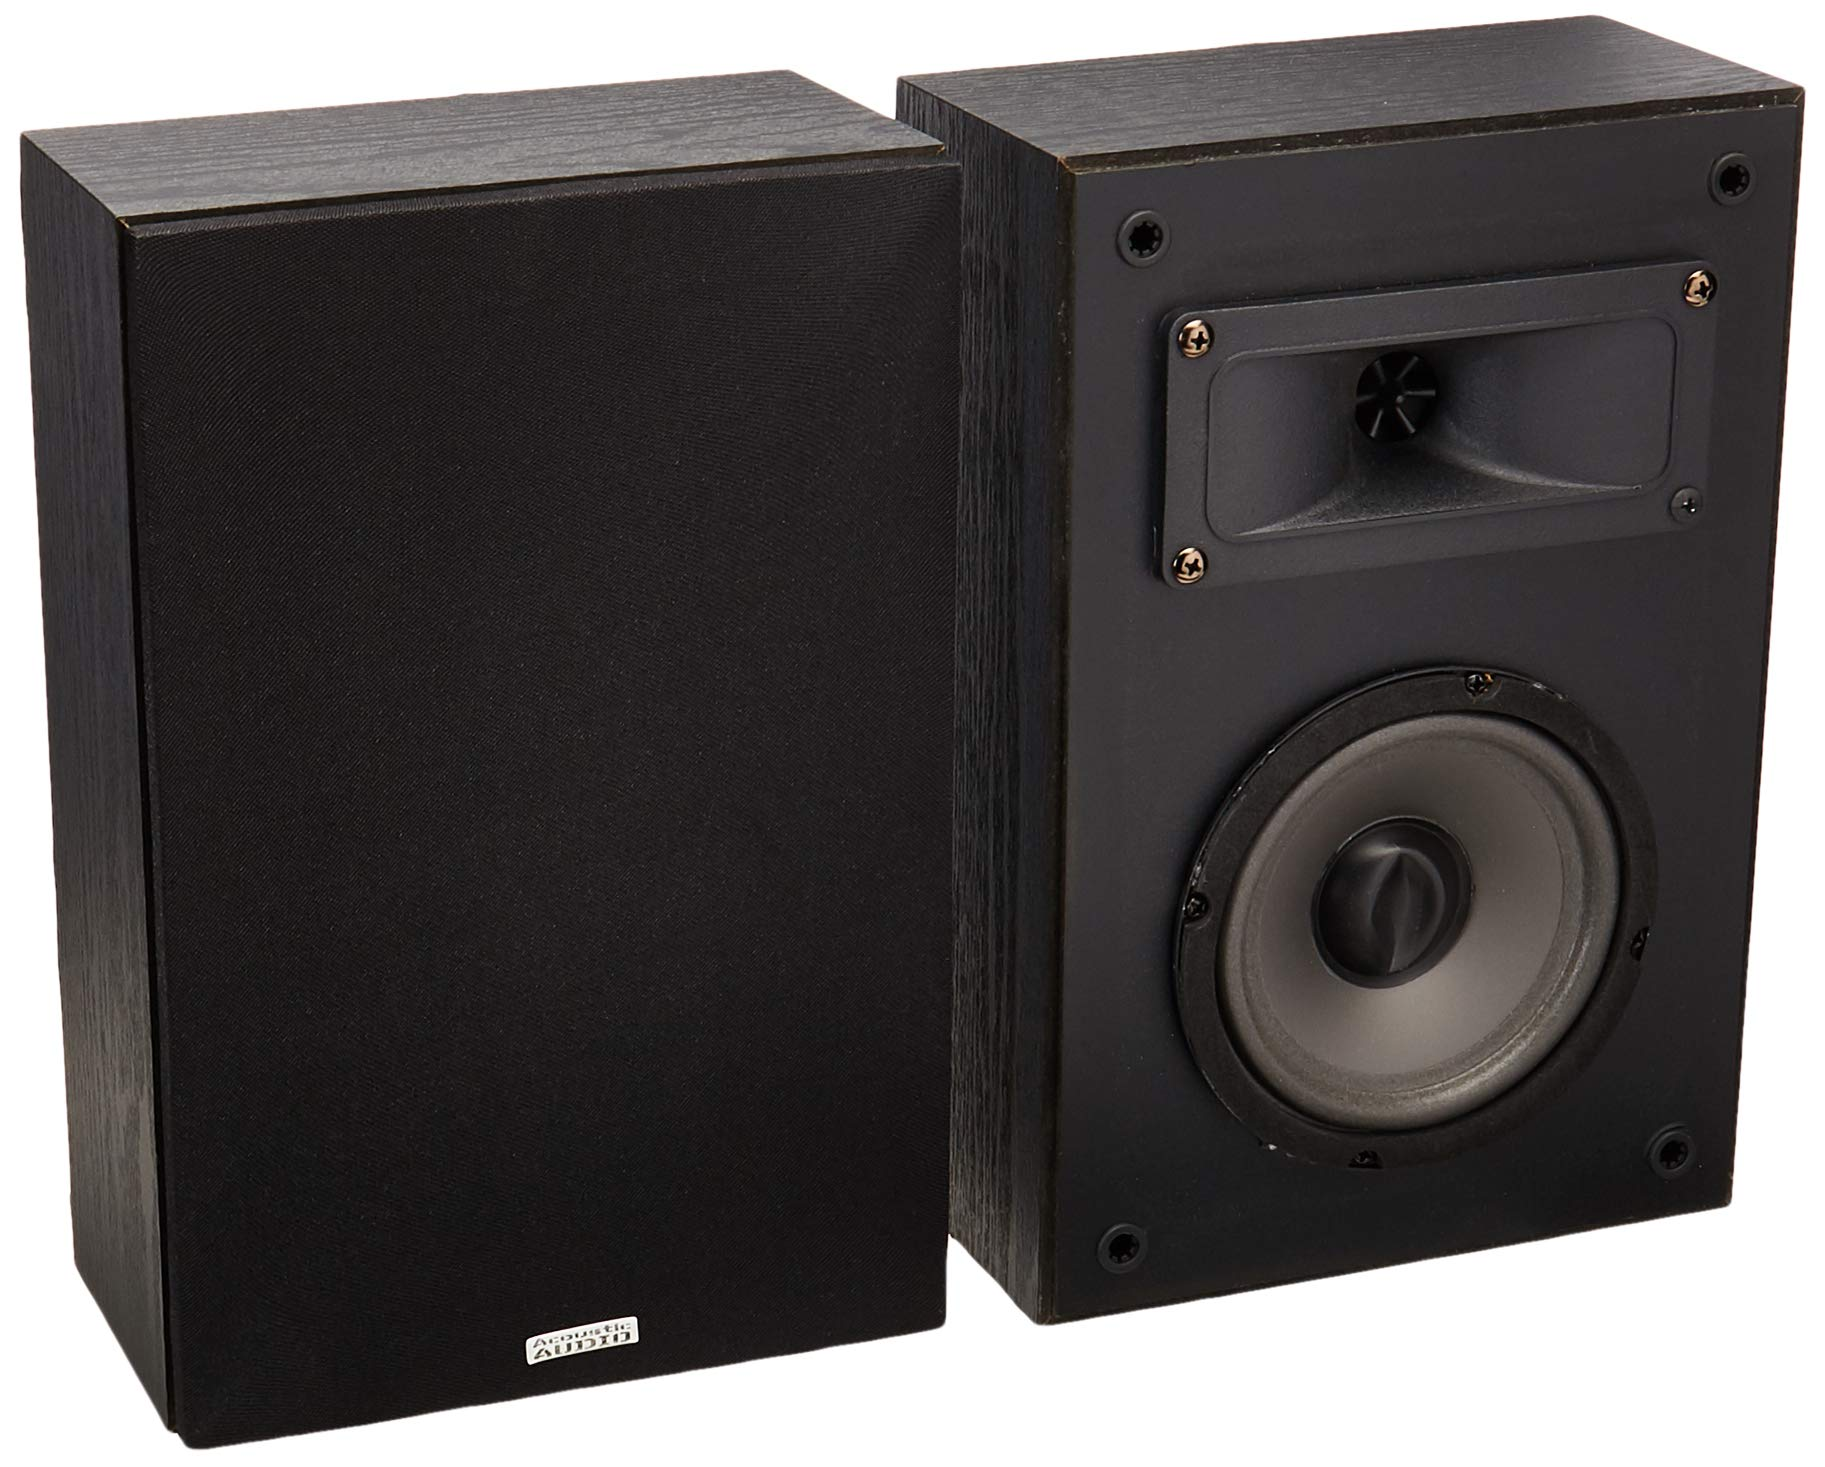 Parlante : Acoustic Audio PSS-52 Bookshelf Speakers 100 Watt